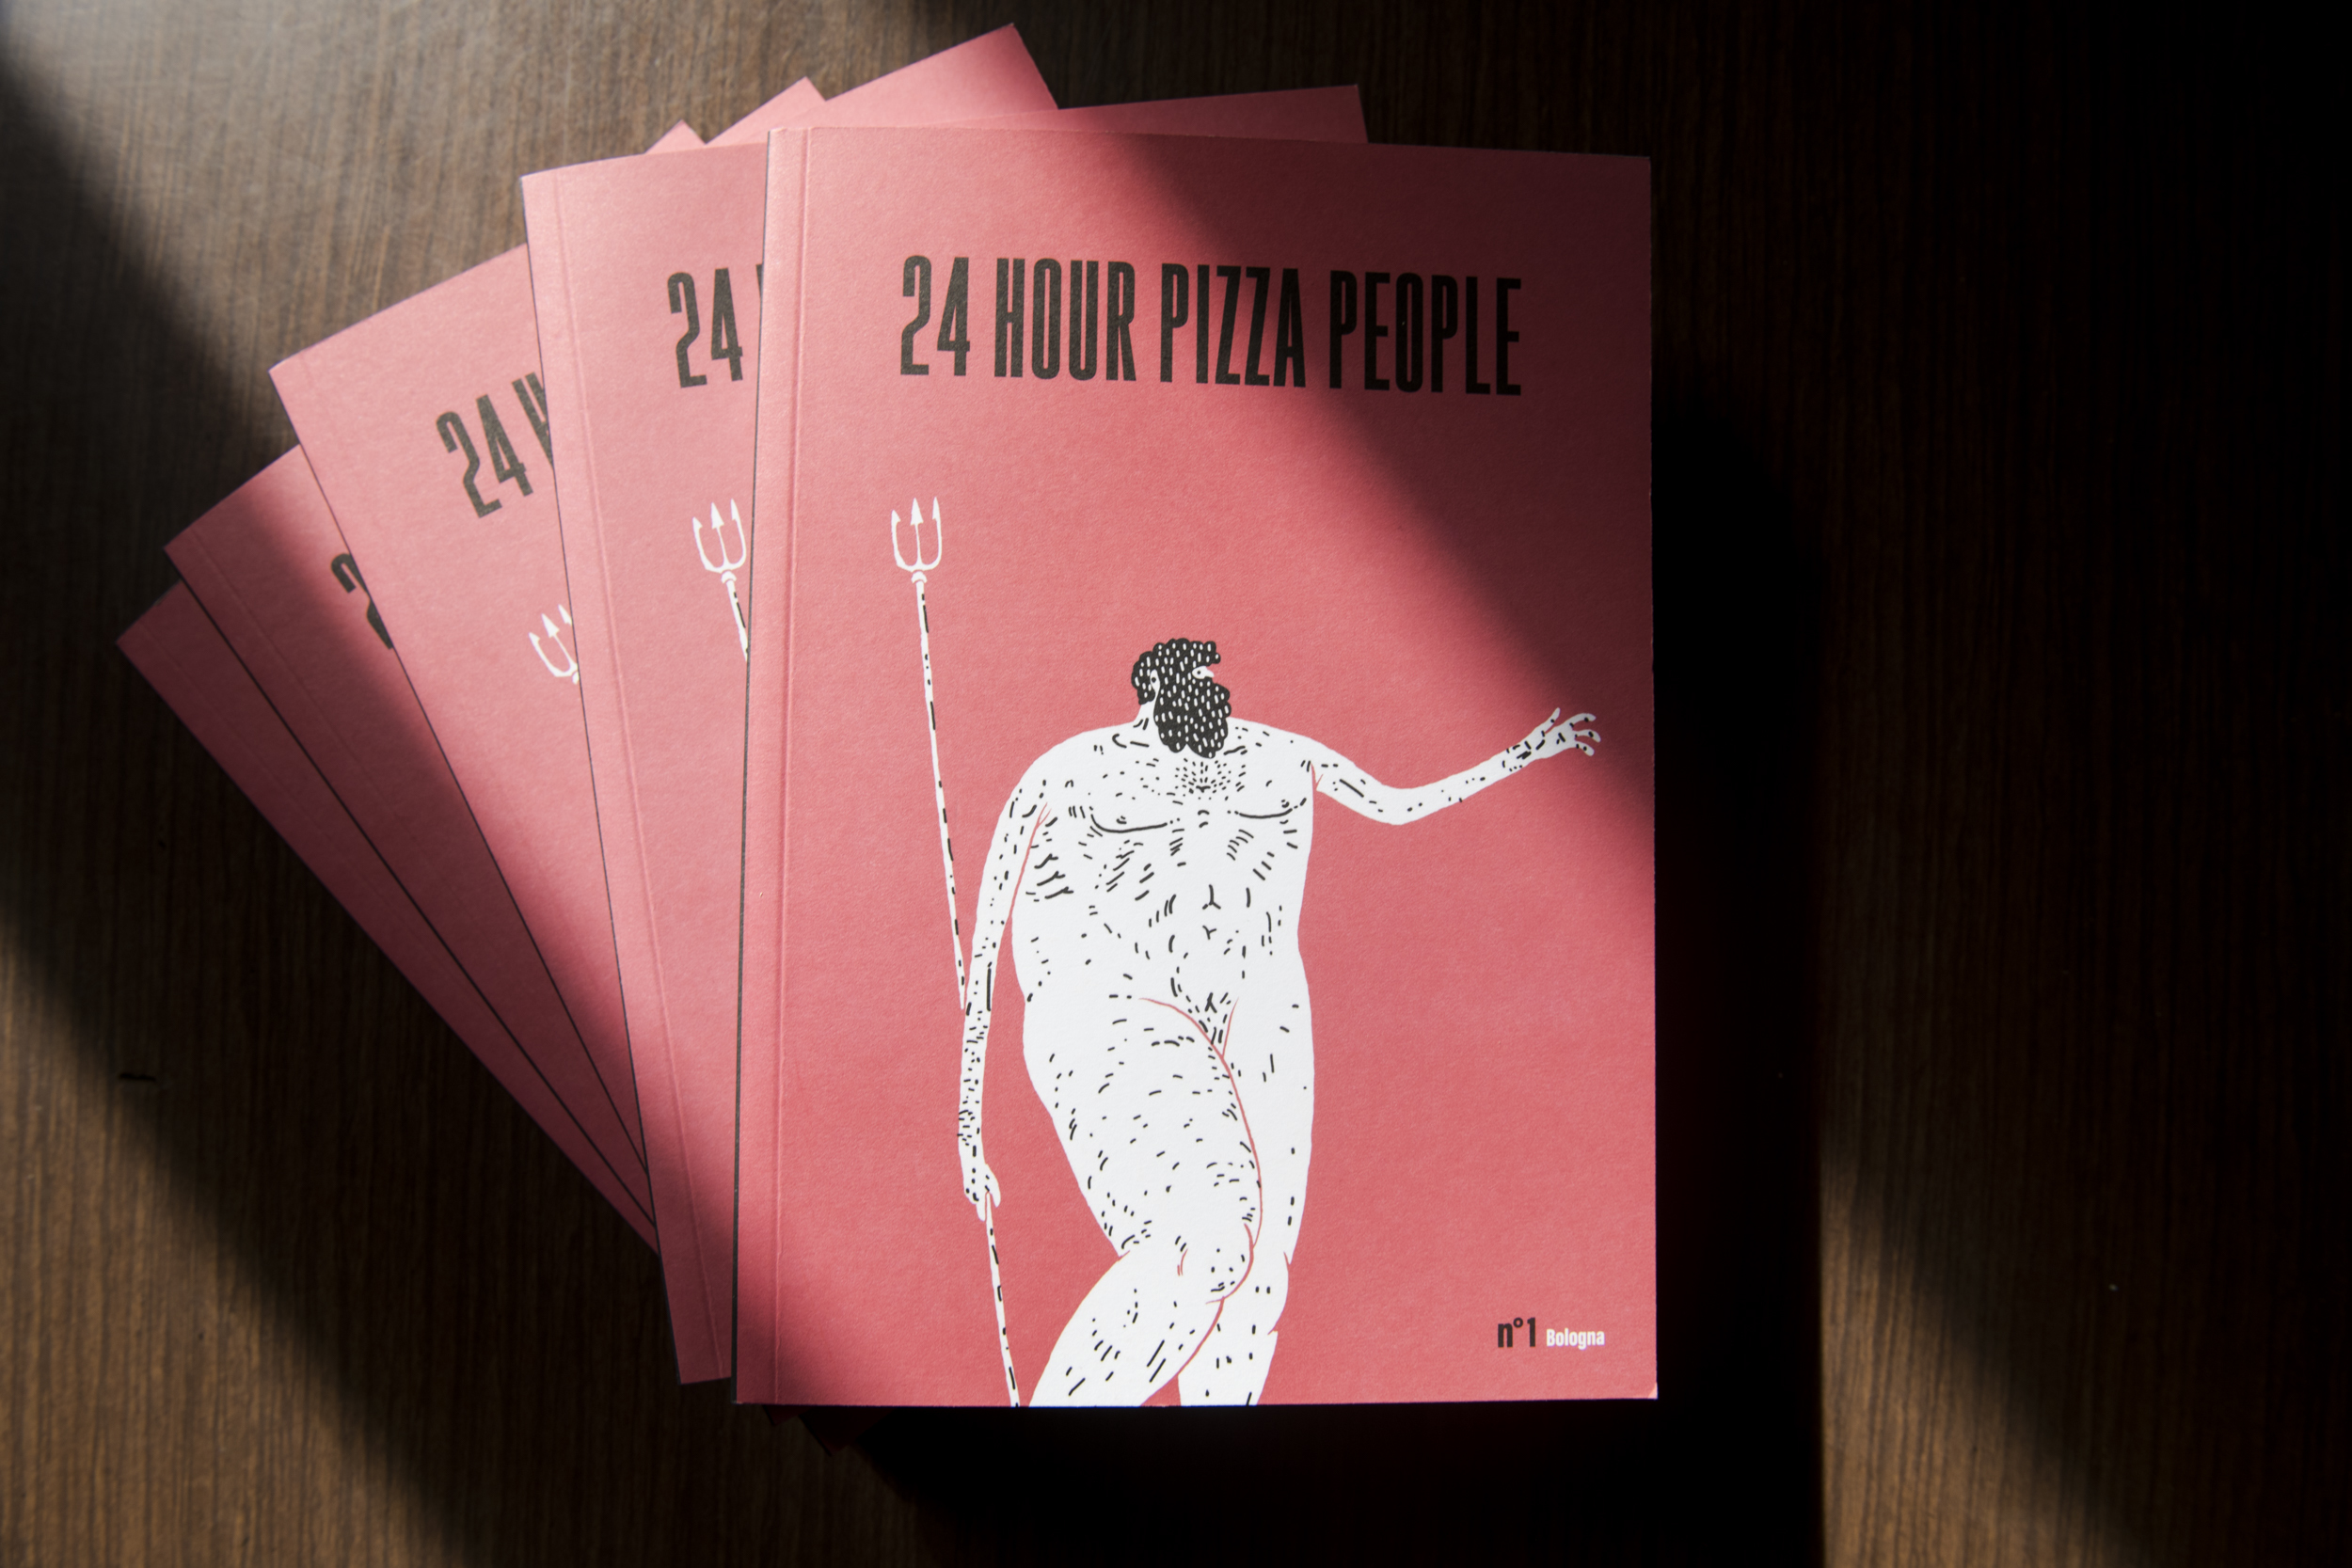 24 HOUR PIZZA PEOPLE - MAGAZINE - BOLOGNA 00001